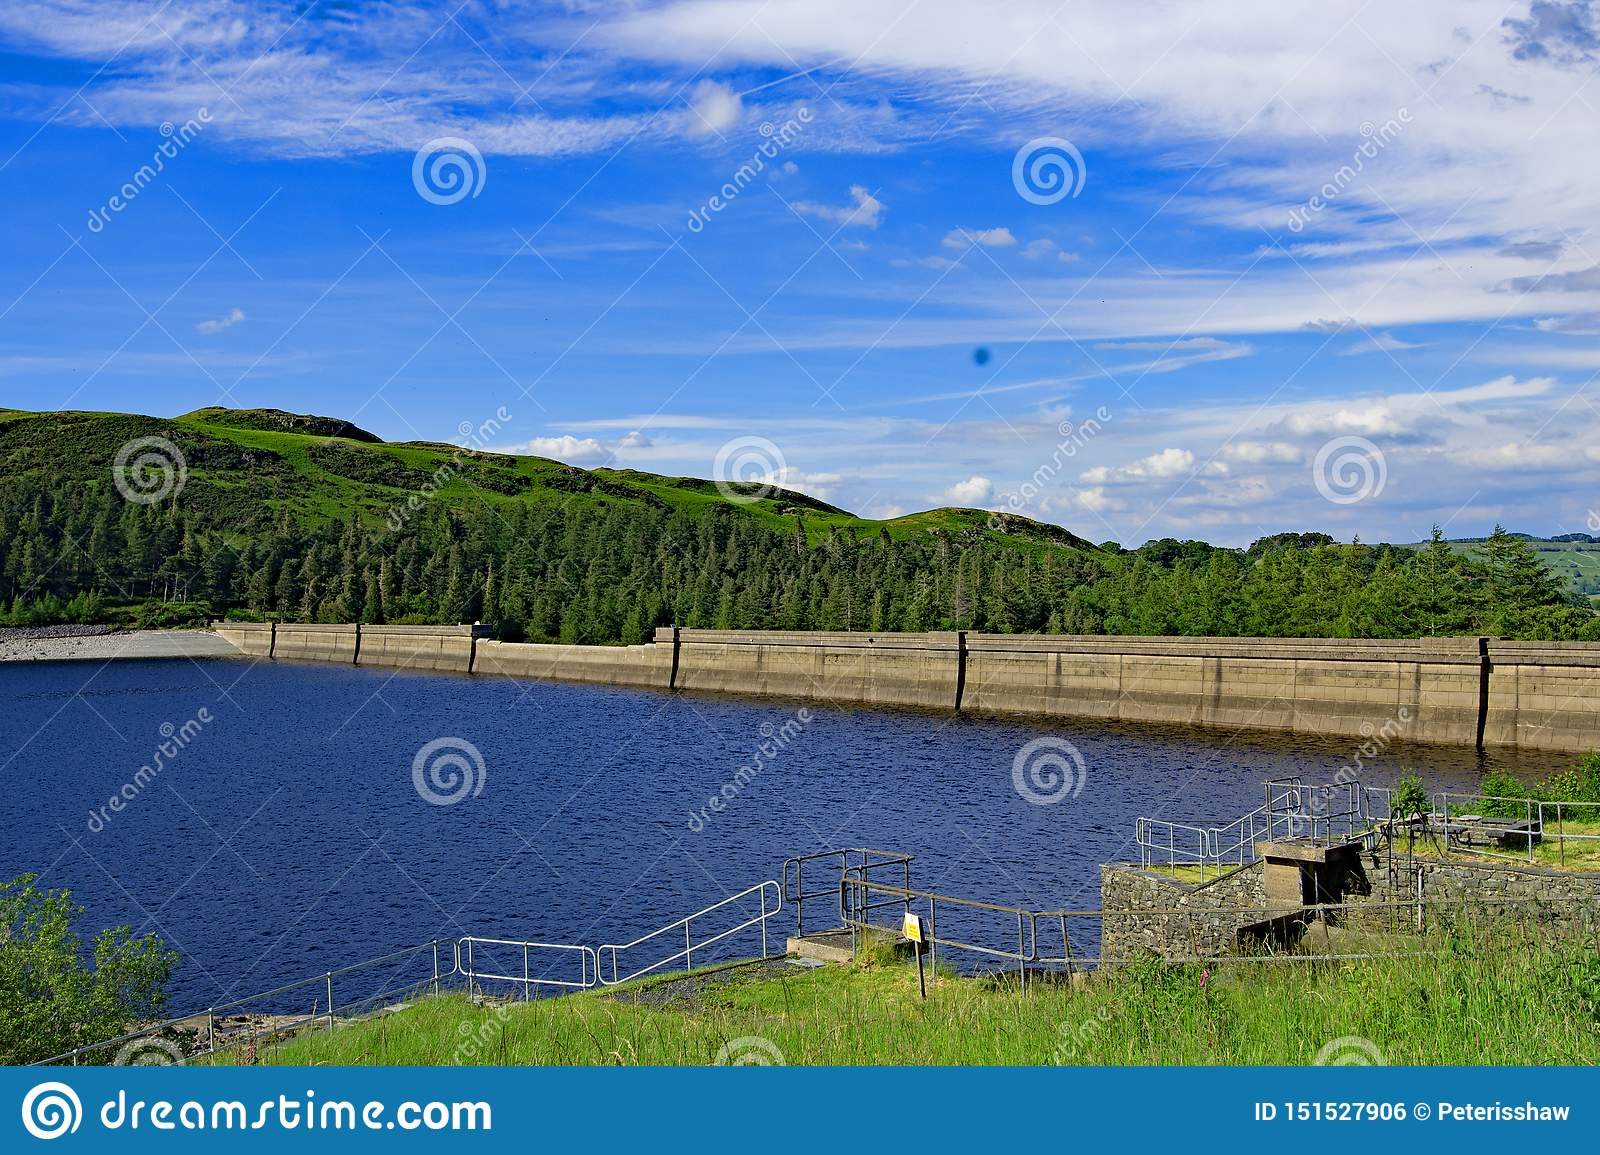 The Dam wall at Haweswater Reservoir 2, Cumbria, England.